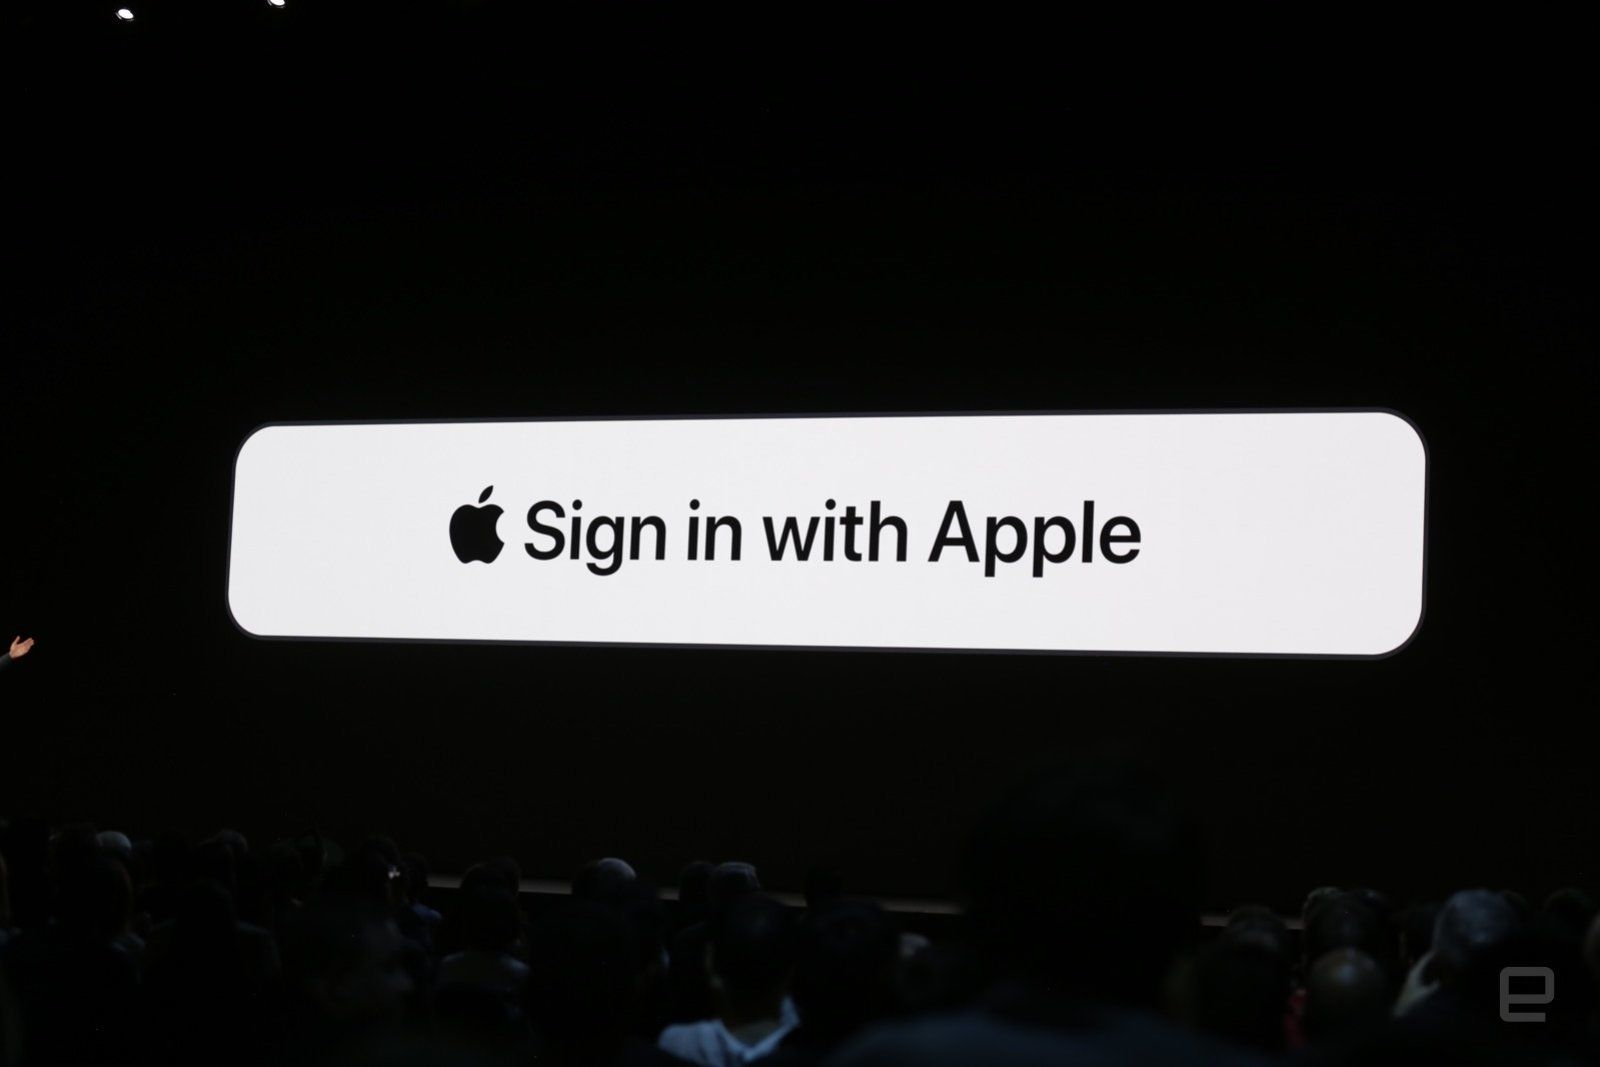 """Photo of $100,000 reward for discoverers of the """"Sign in with Apple"""" vulnerability. Prevent account takeover-Engadget Japan"""